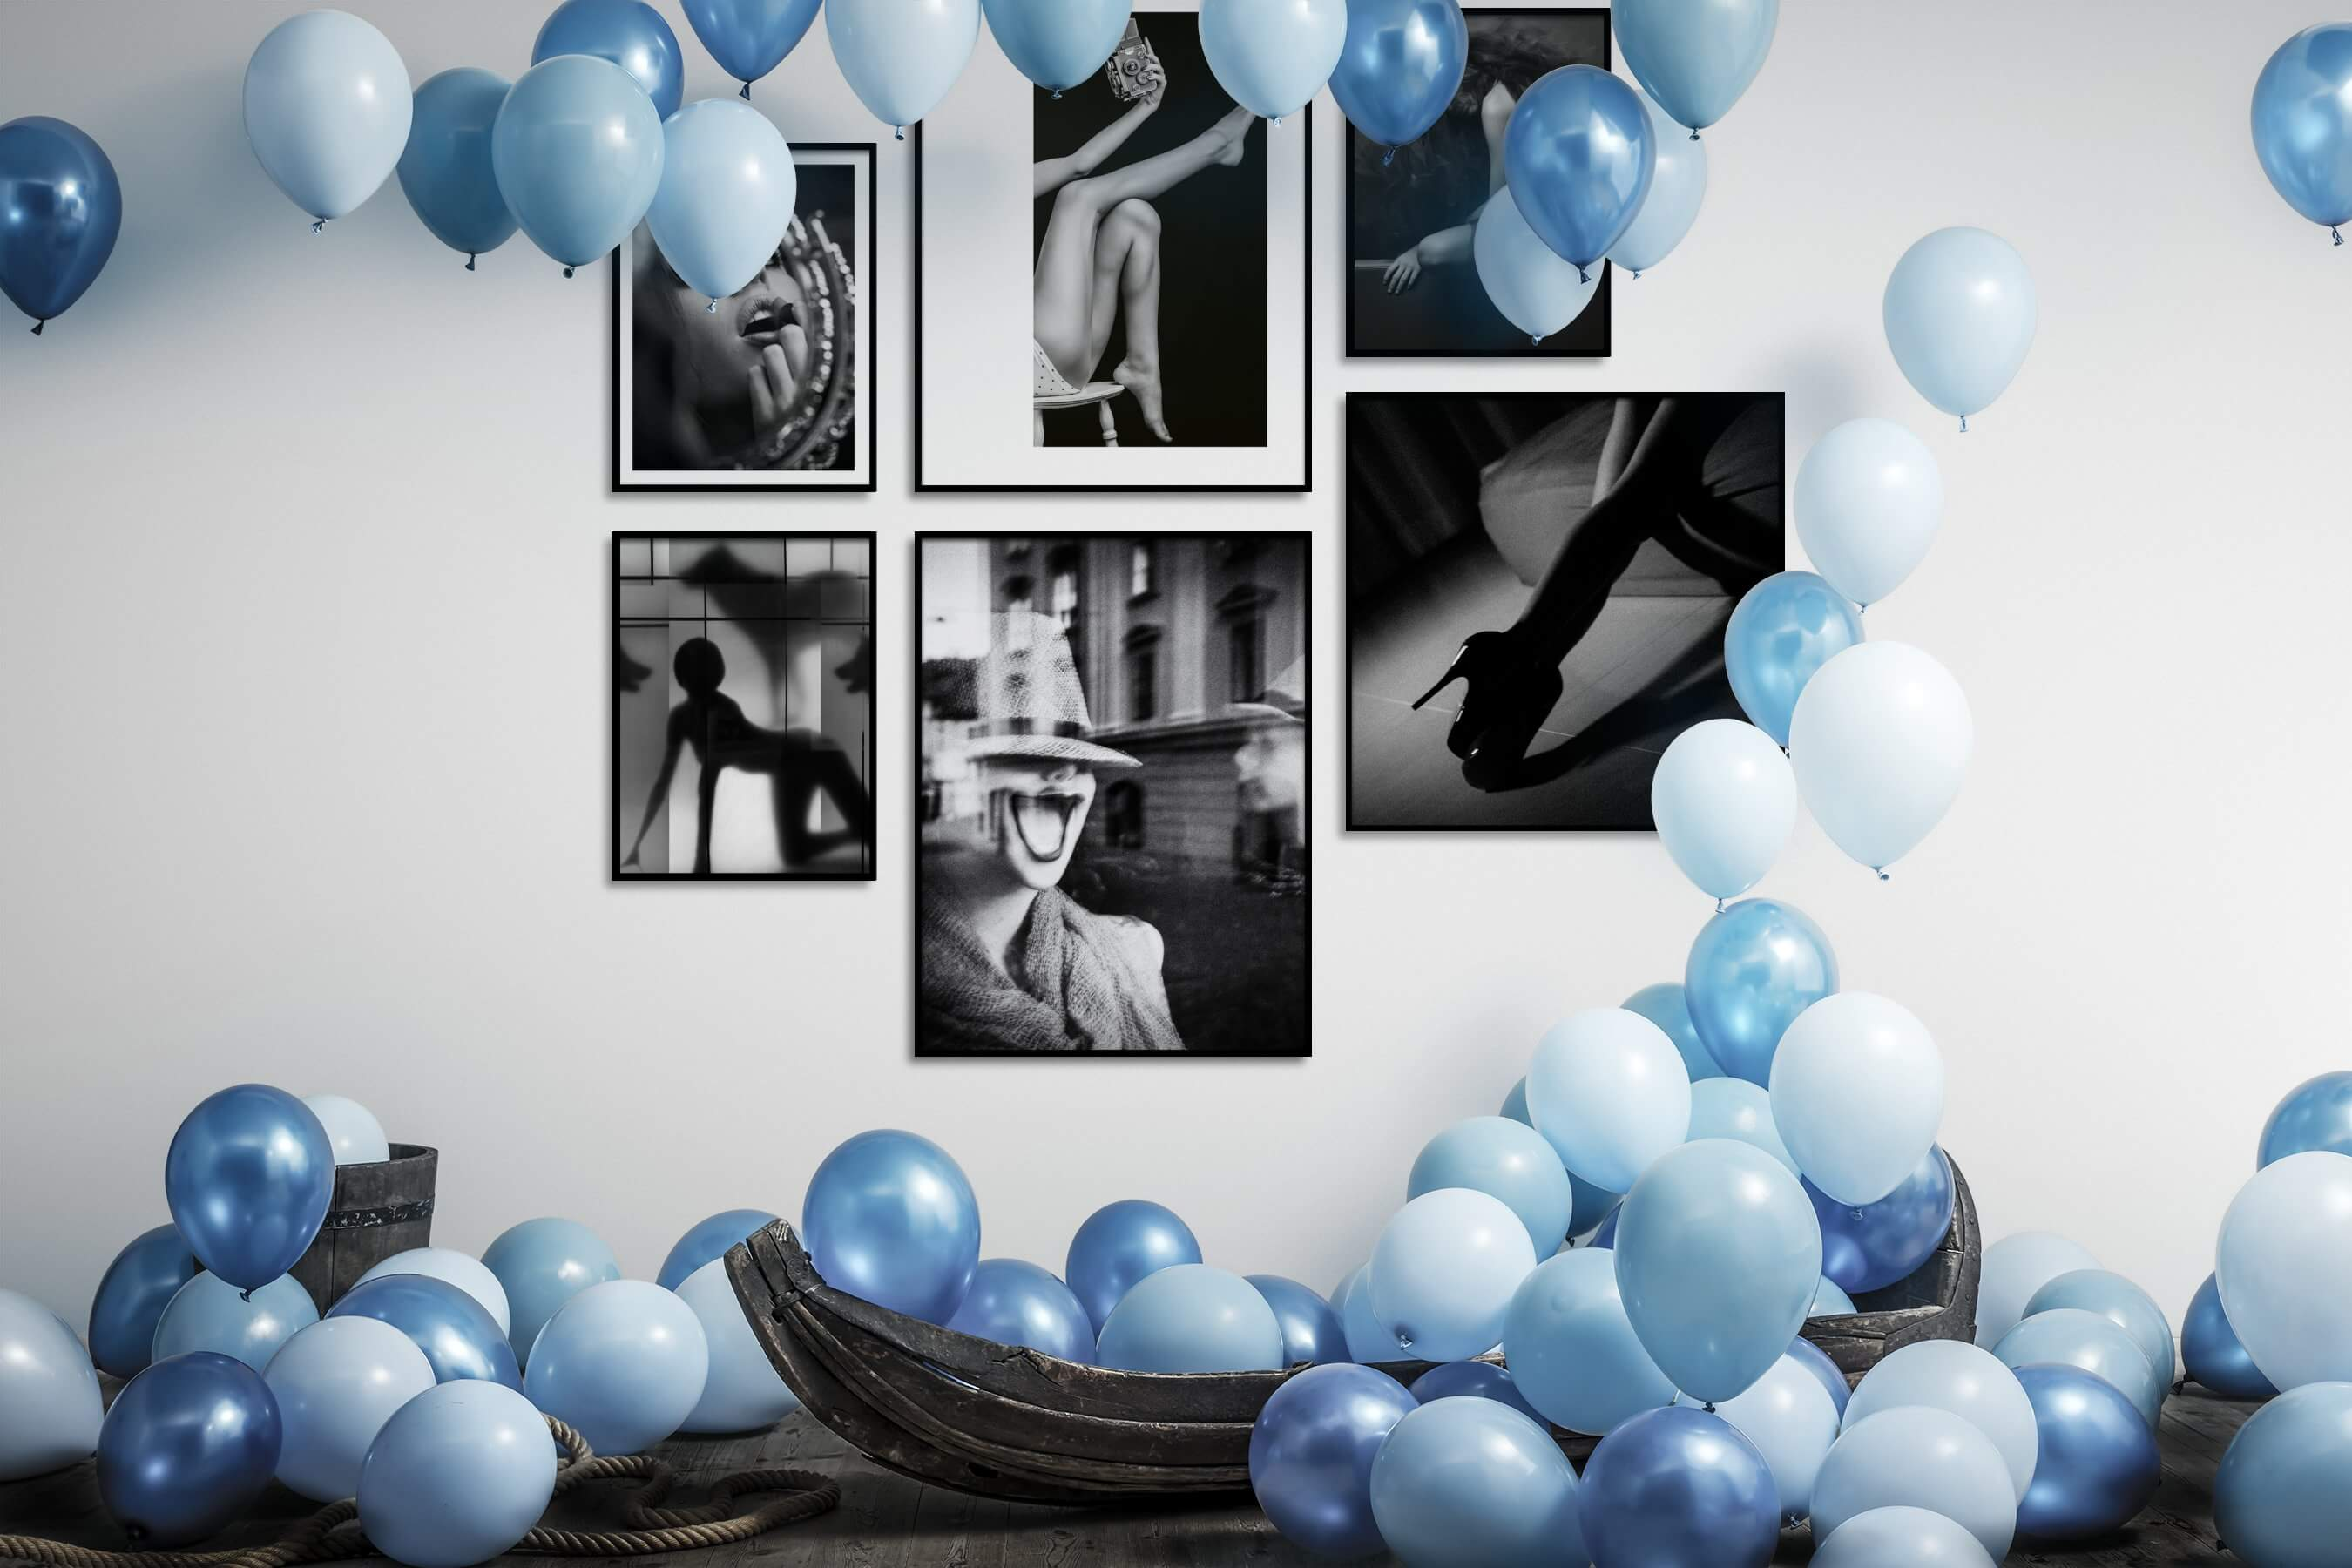 Gallery wall idea with six framed pictures arranged on a wall depicting Fashion & Beauty, Black & White, For the Moderate, Vintage, Artsy, For the Maximalist, and City Life